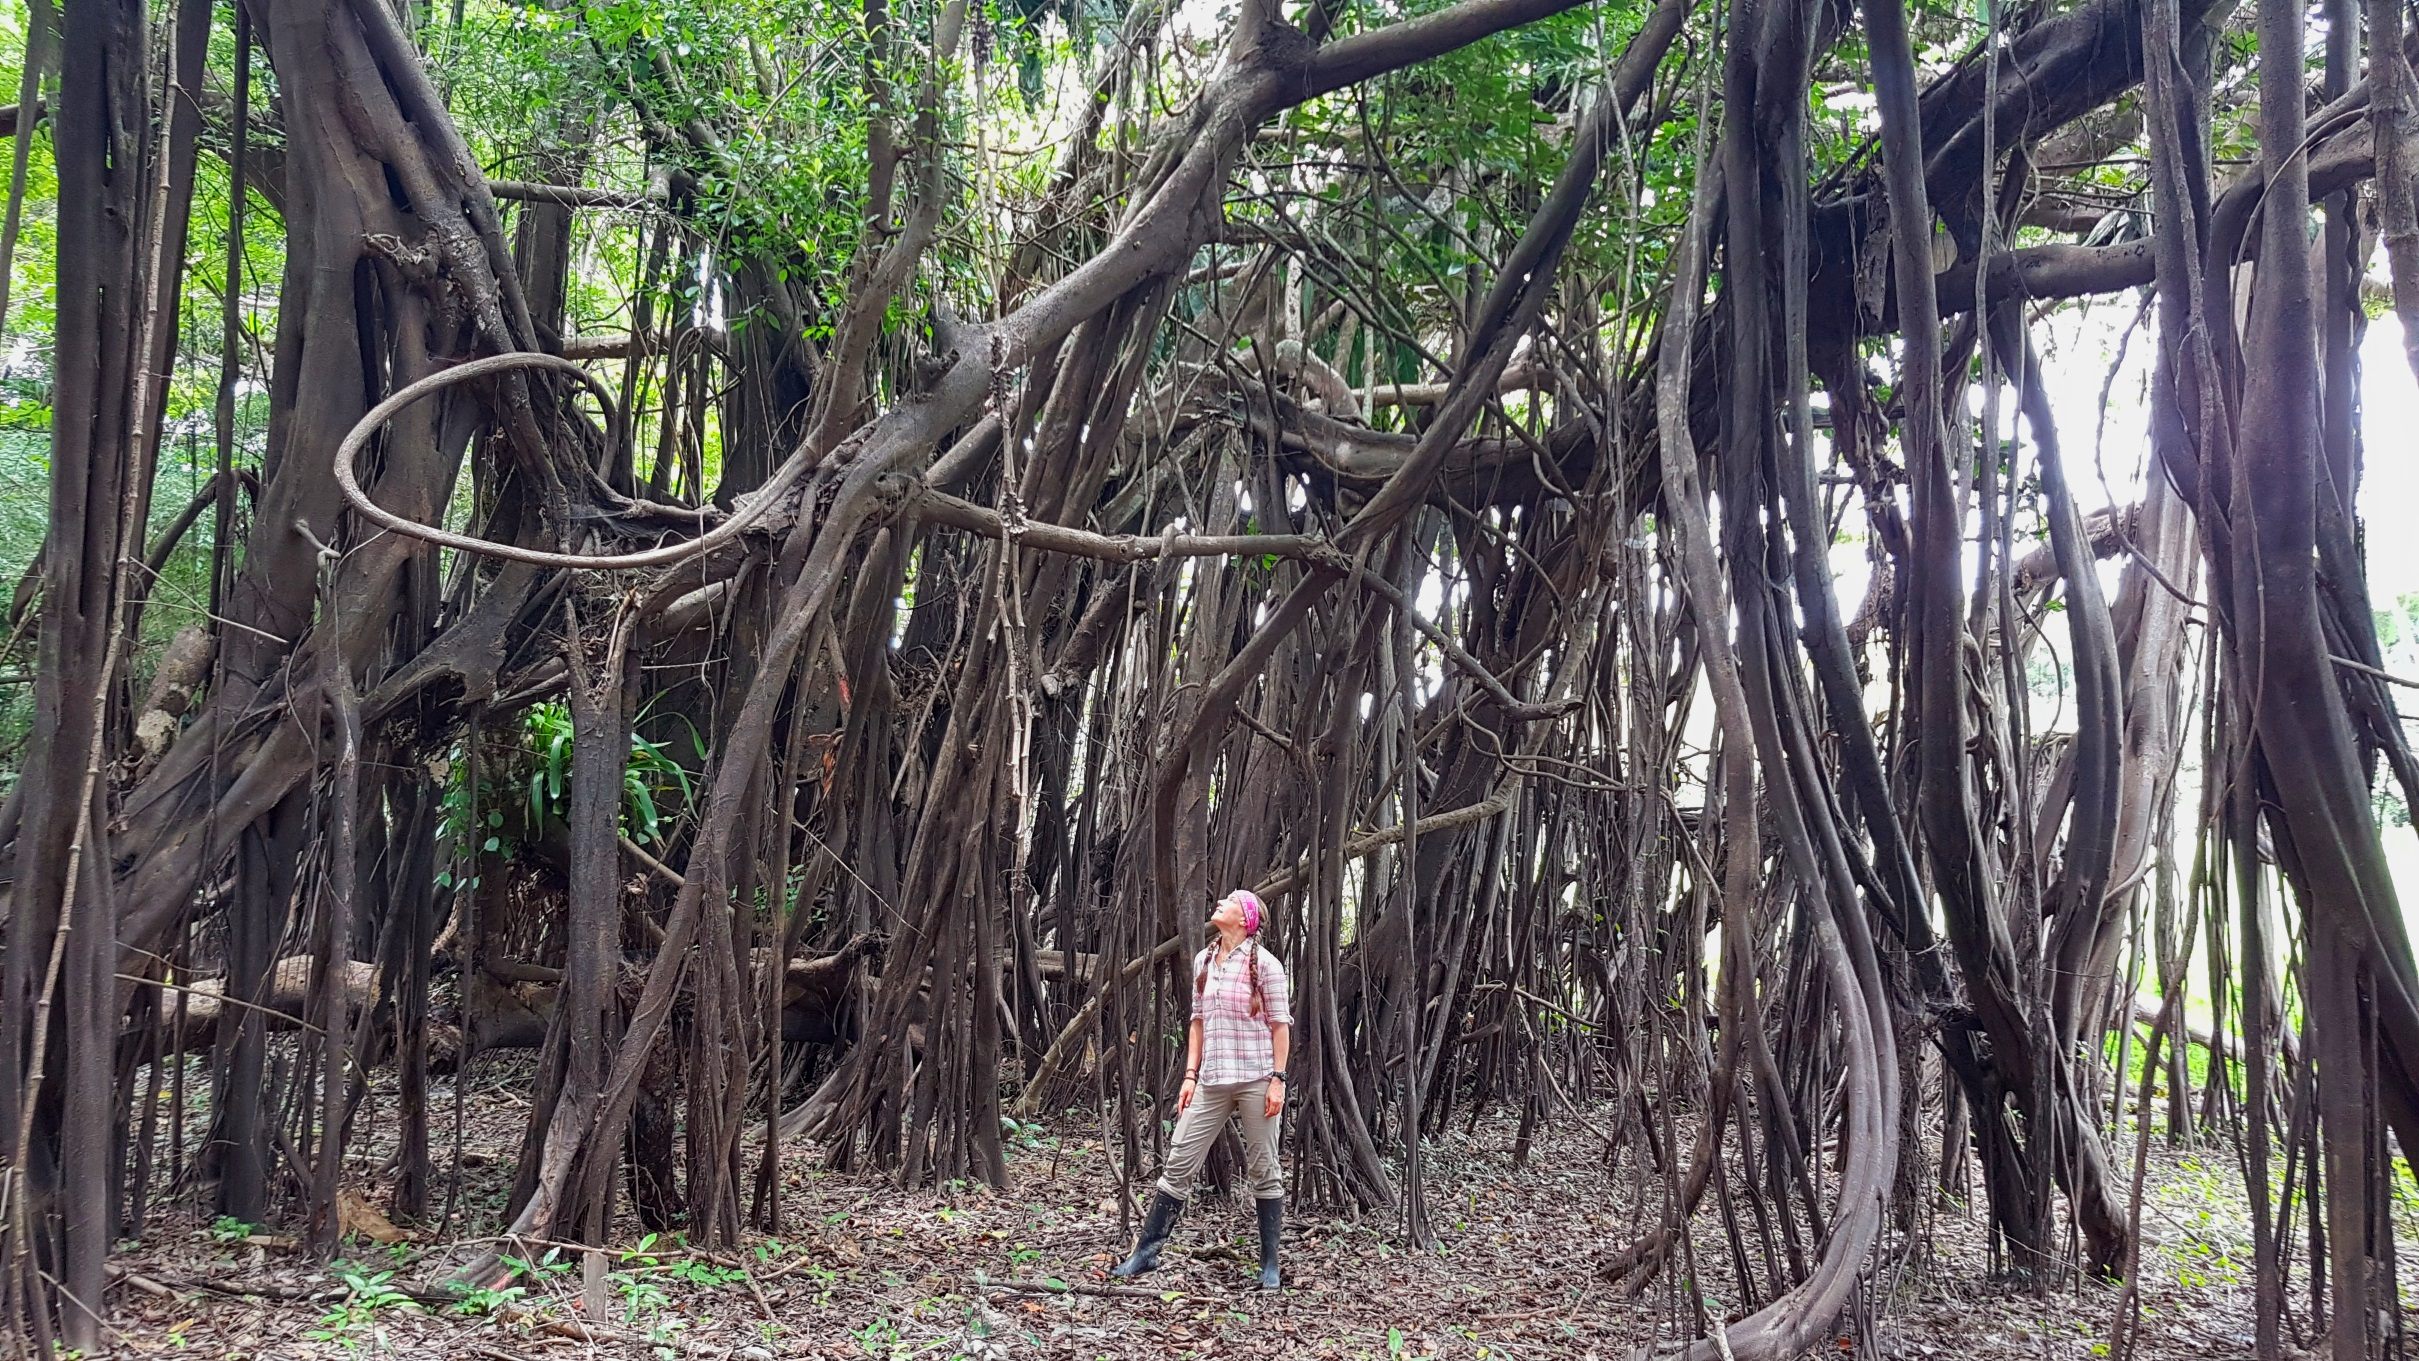 Trees in the low lying rain forest resemble a mangrove forest.